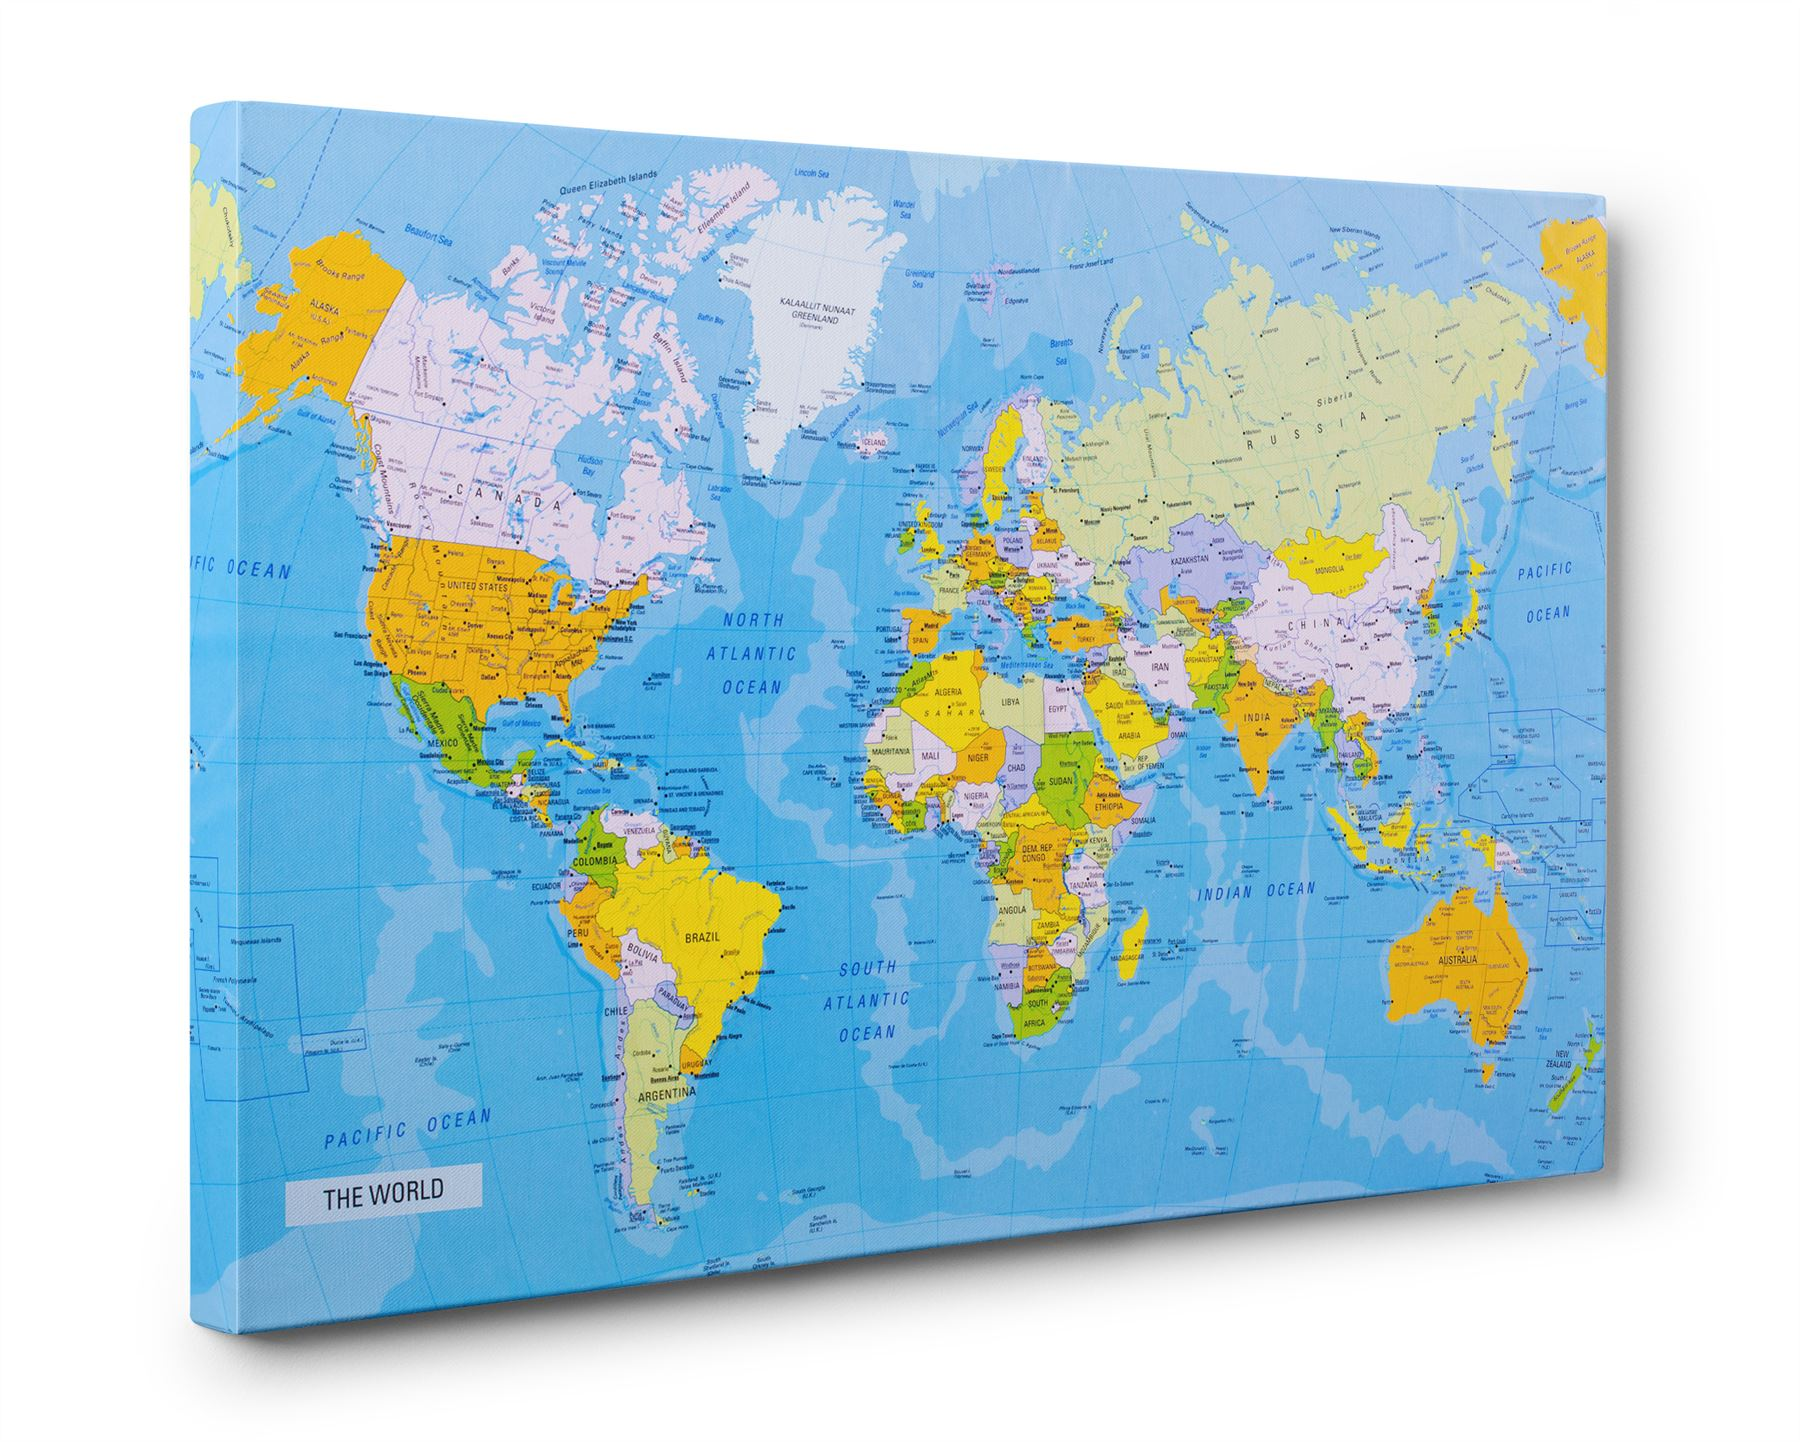 Wall size world map canvas 28 images world wall map on canvas wall size world map canvas map of the world box canvas print wall atlas geography choice gumiabroncs Choice Image